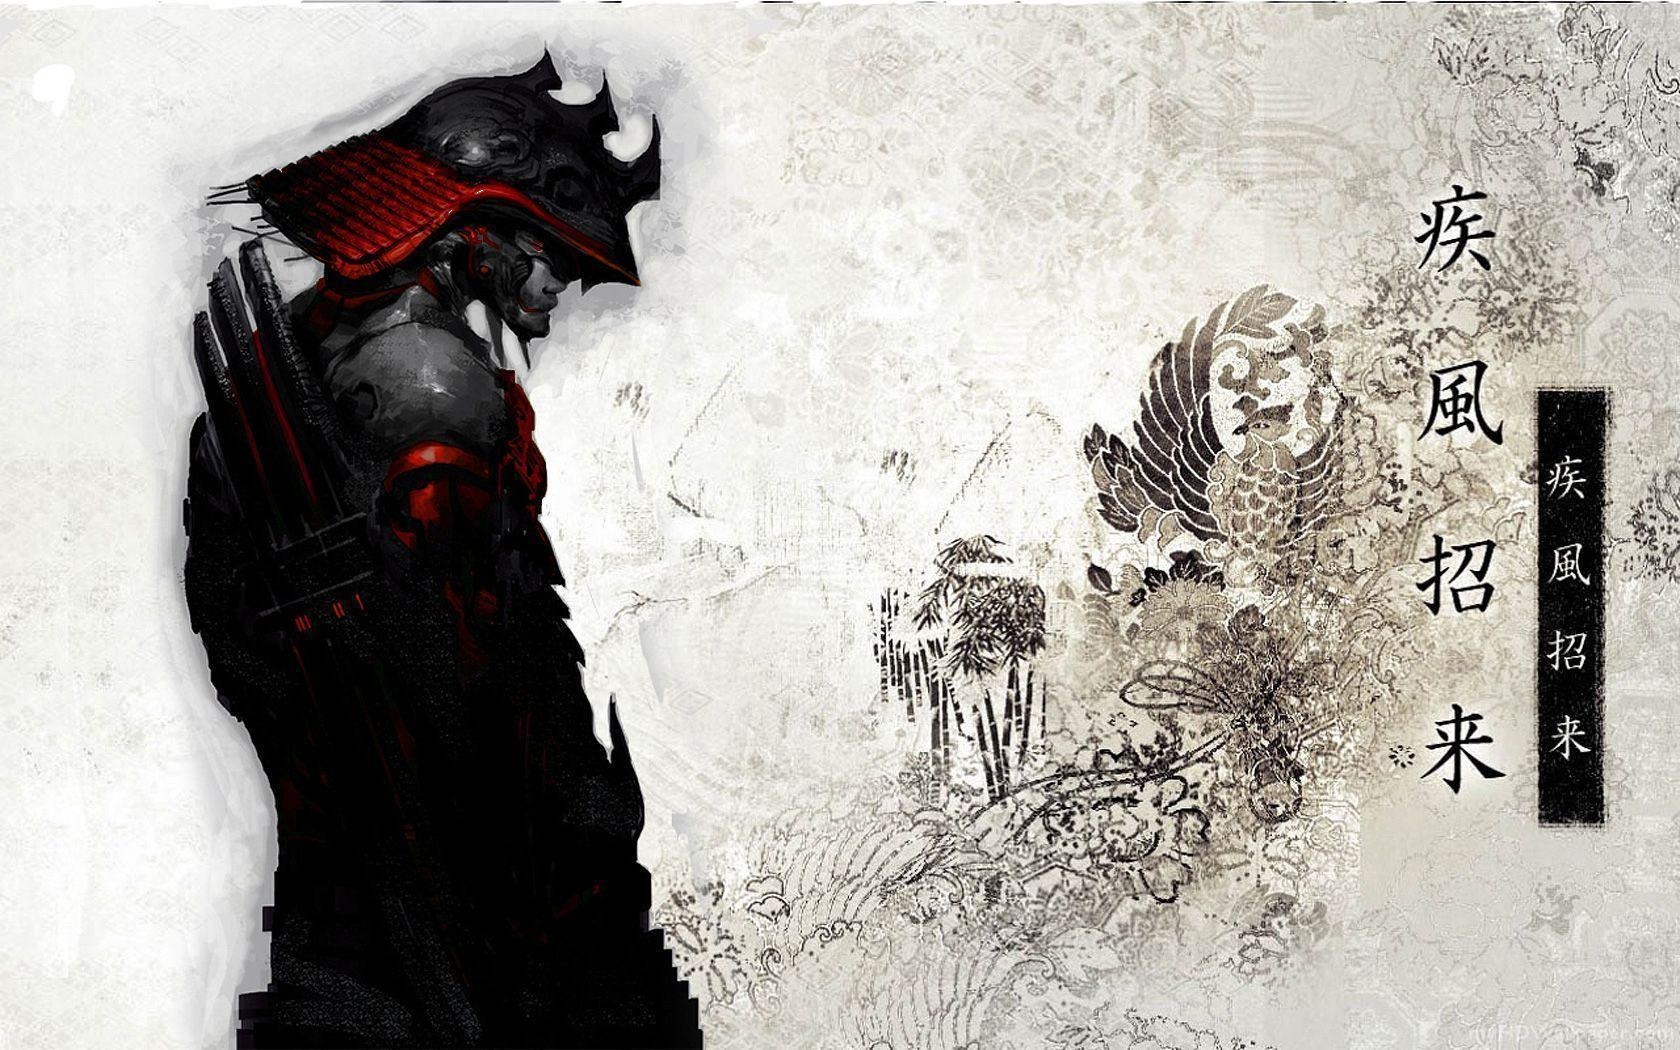 Fantasy Art Ninja Mask Wallpapers Hd Desktop And: Samurai Wallpapers